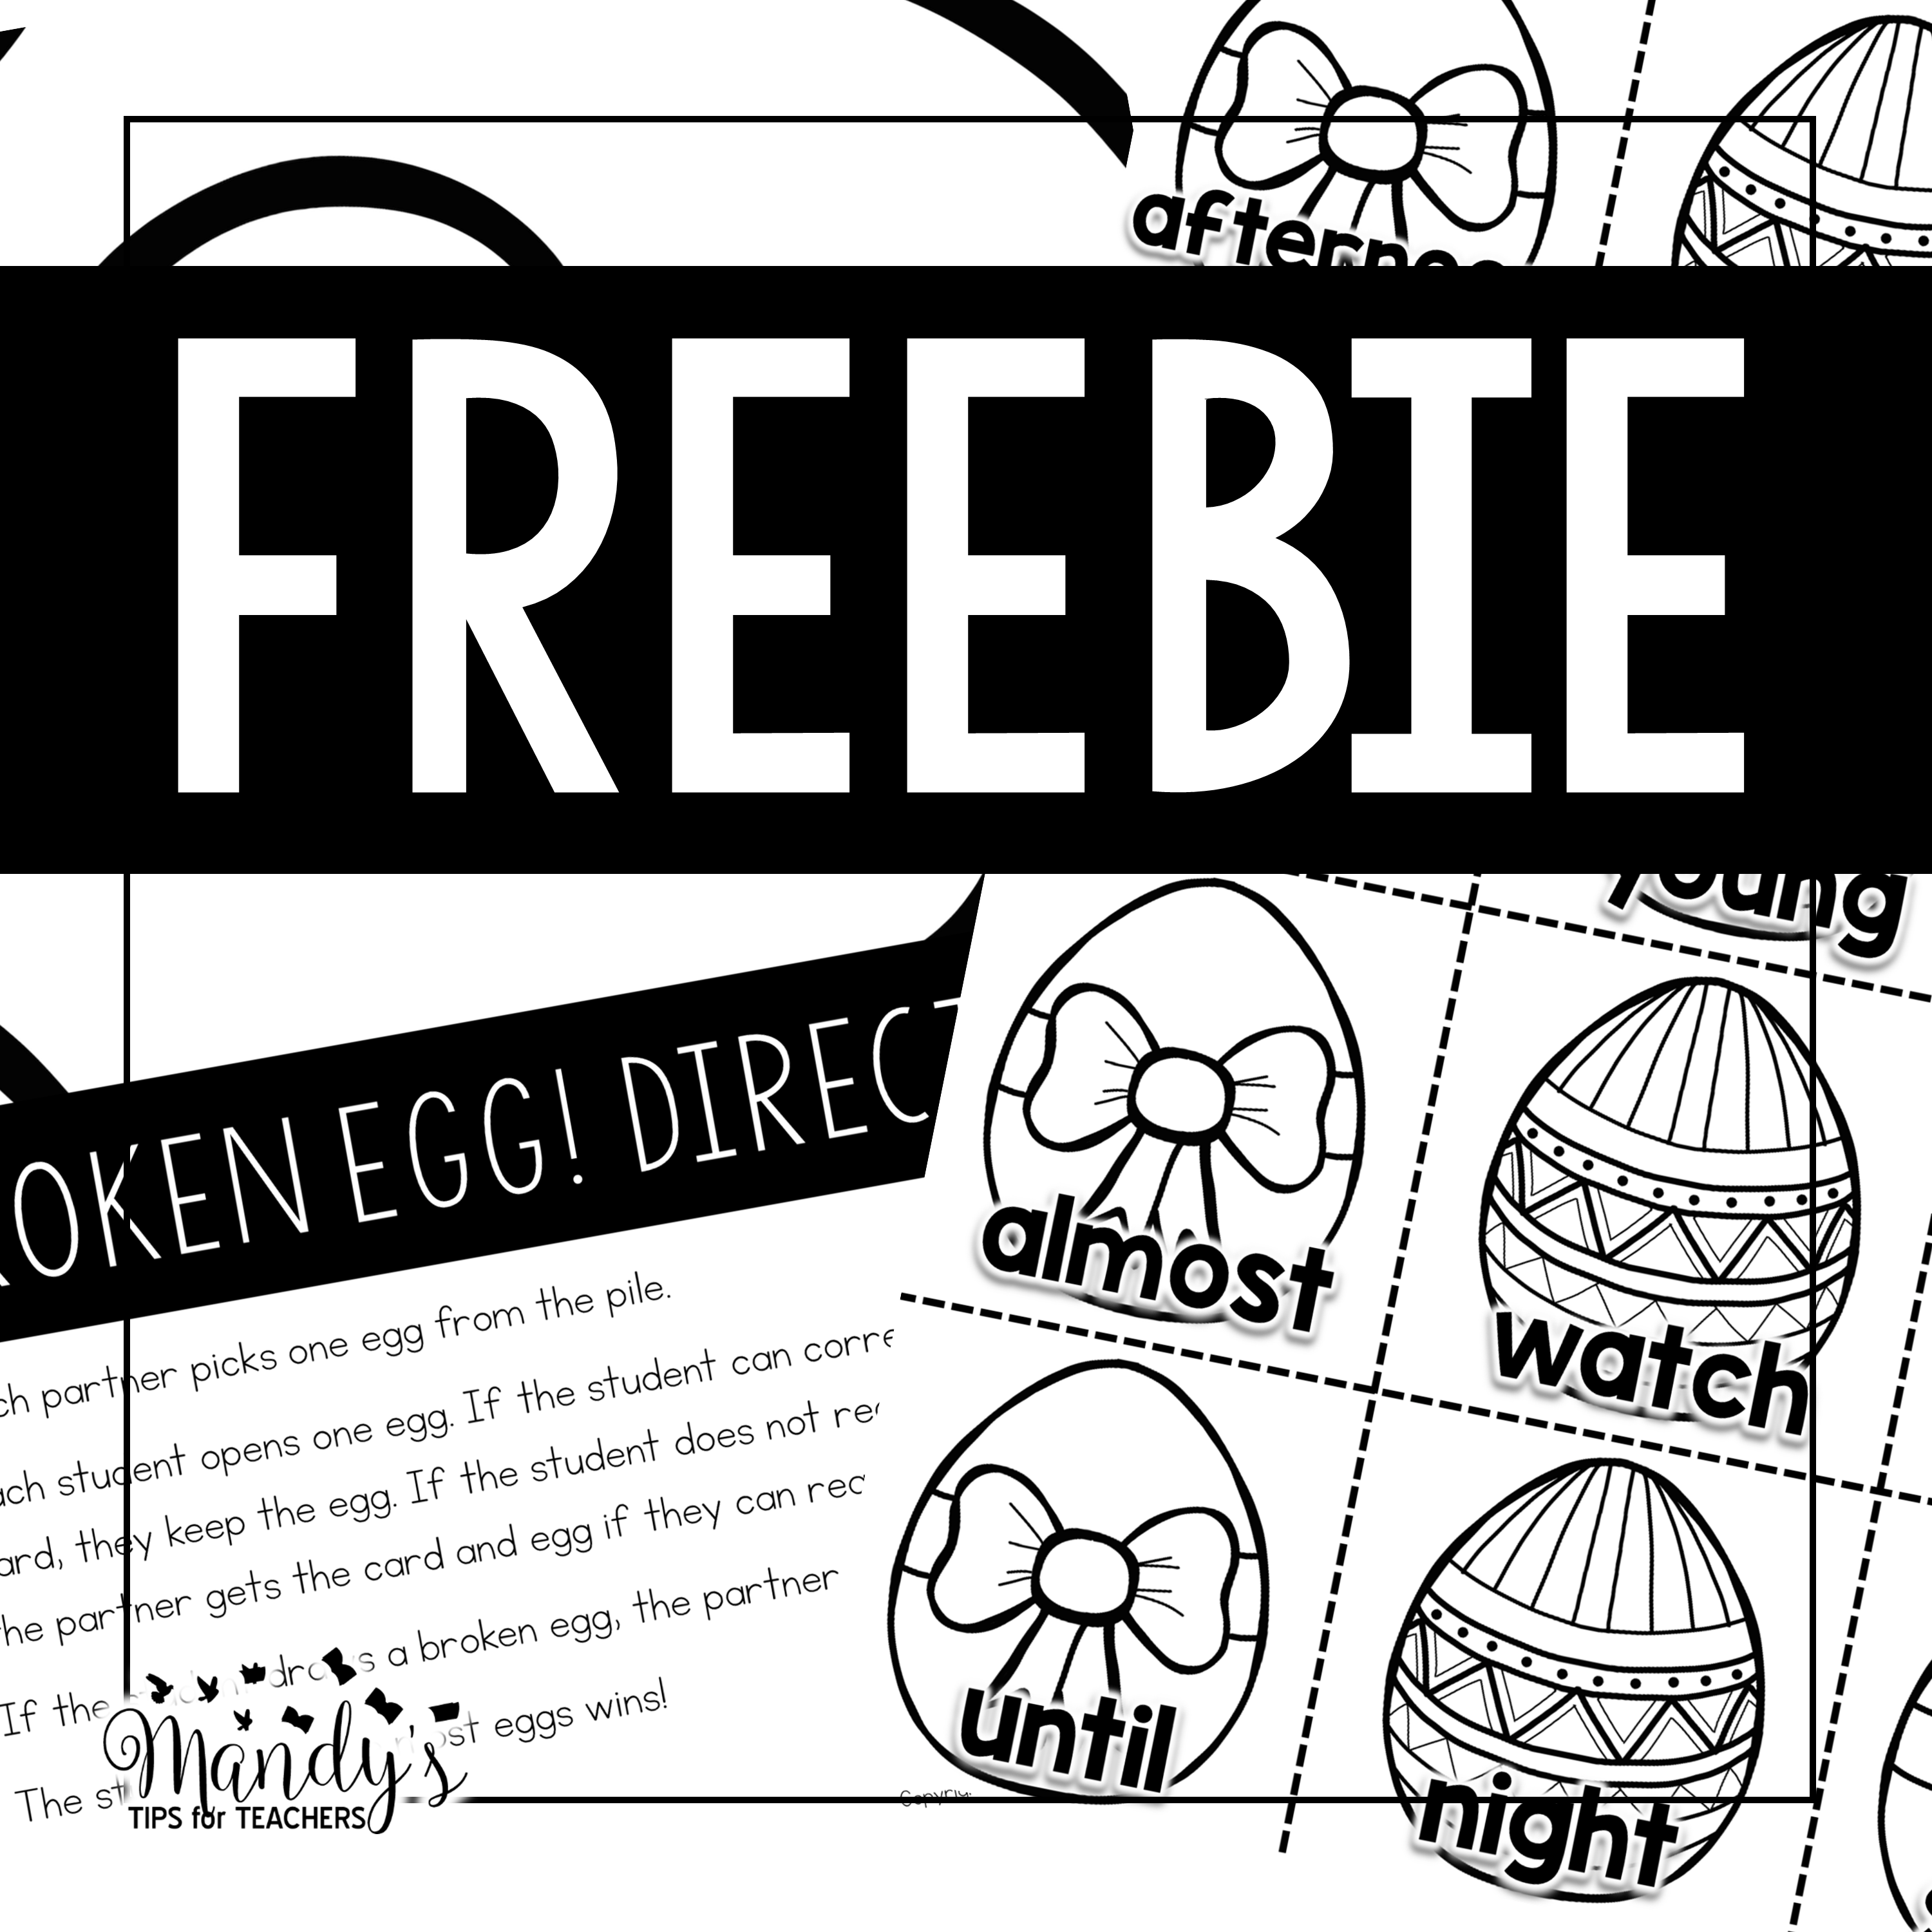 Fun with plastic eggs FREEBIES!